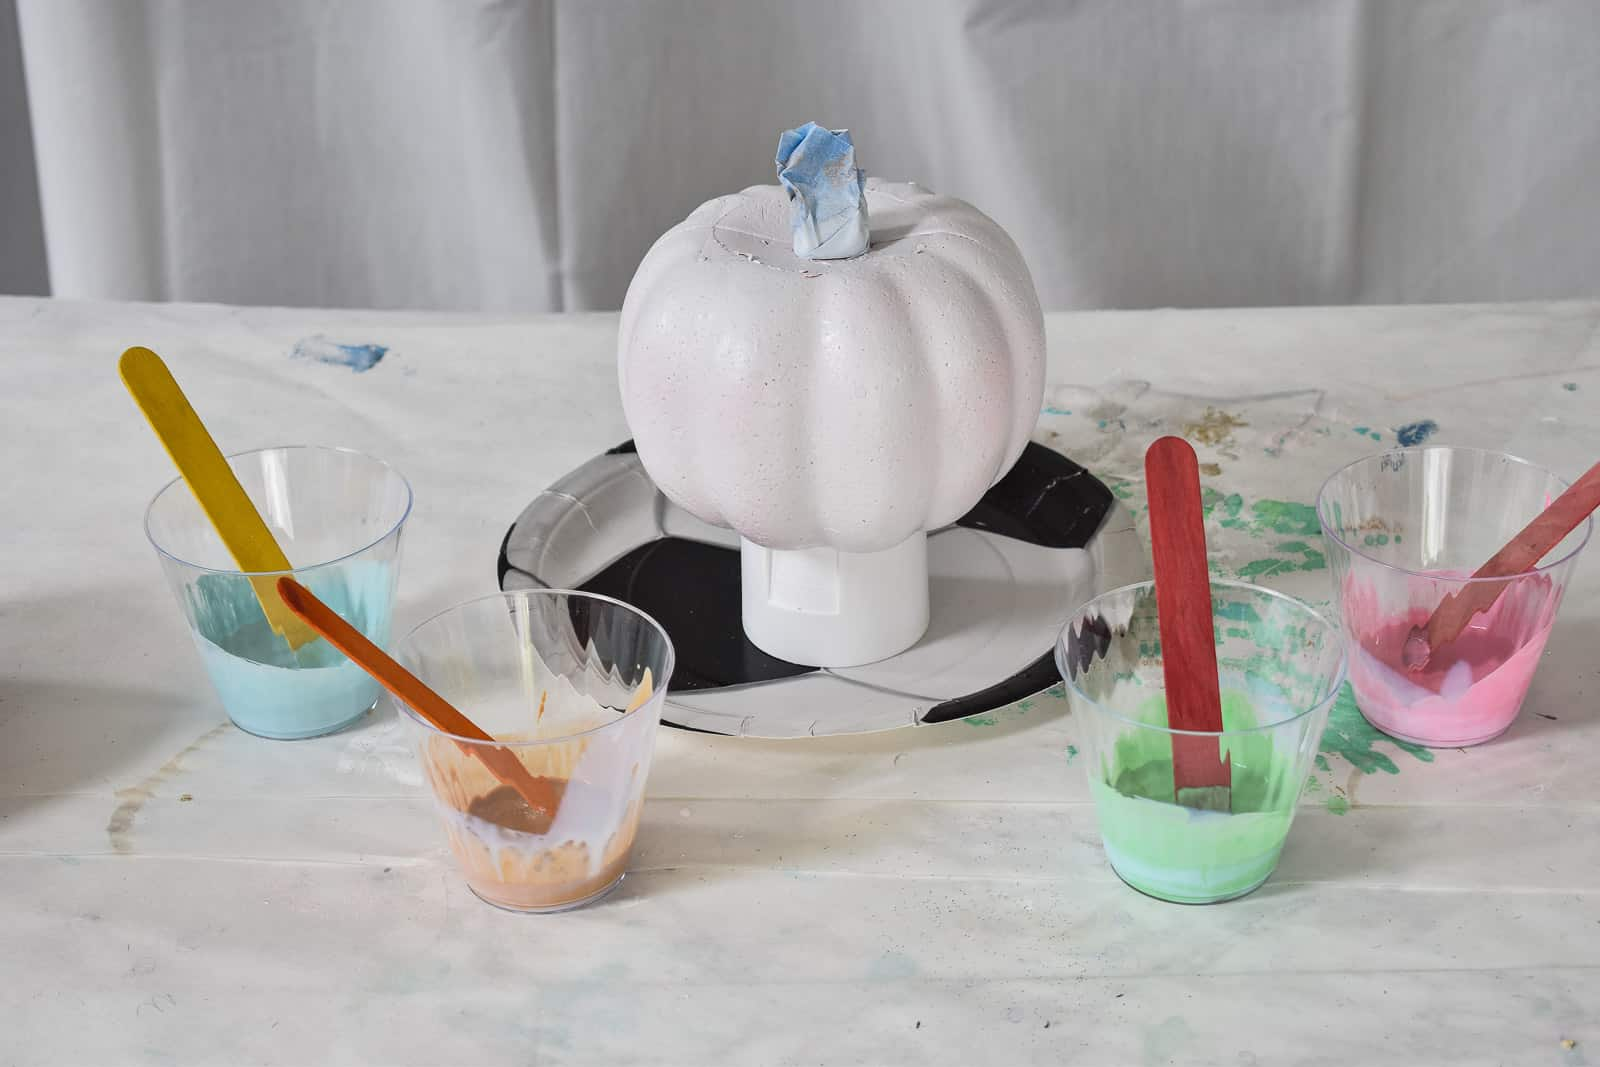 make sure pumpkin is elevated above a disposable plate